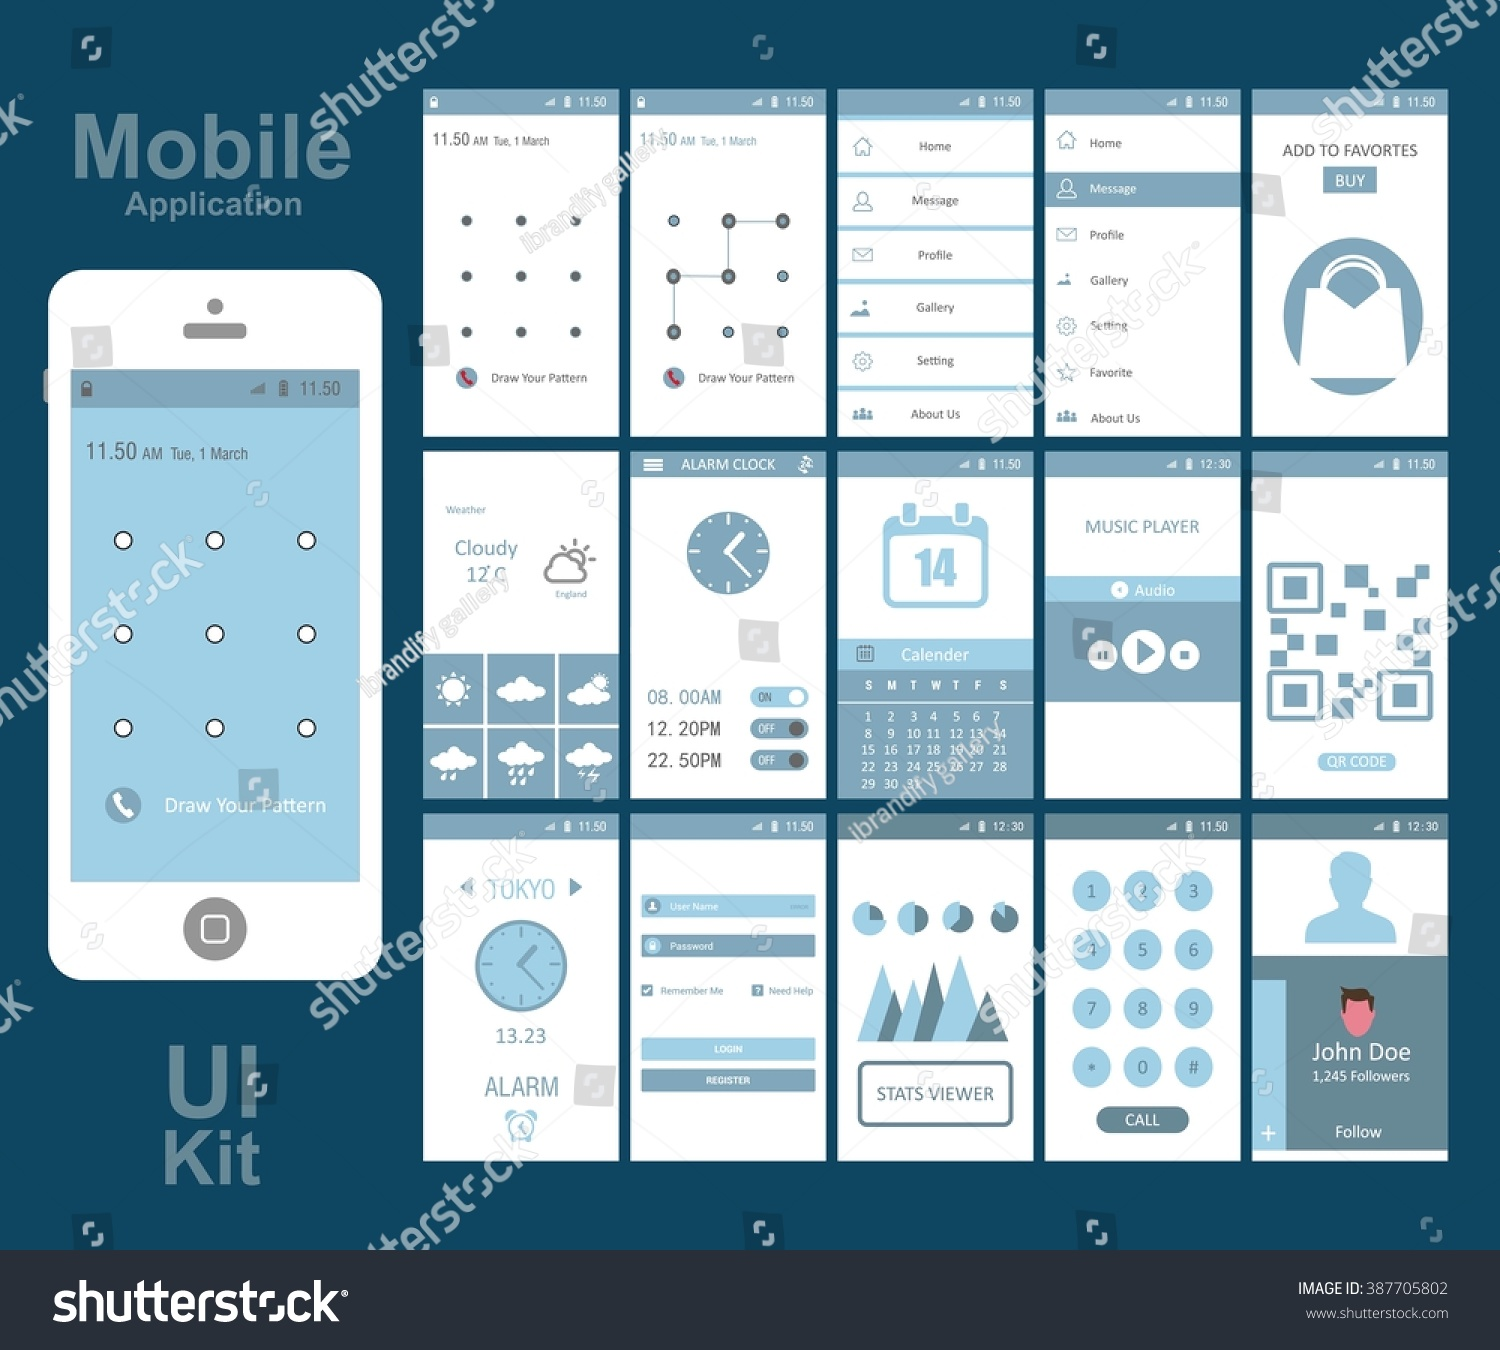 Mobile Application Interface Concept Vector Illustration